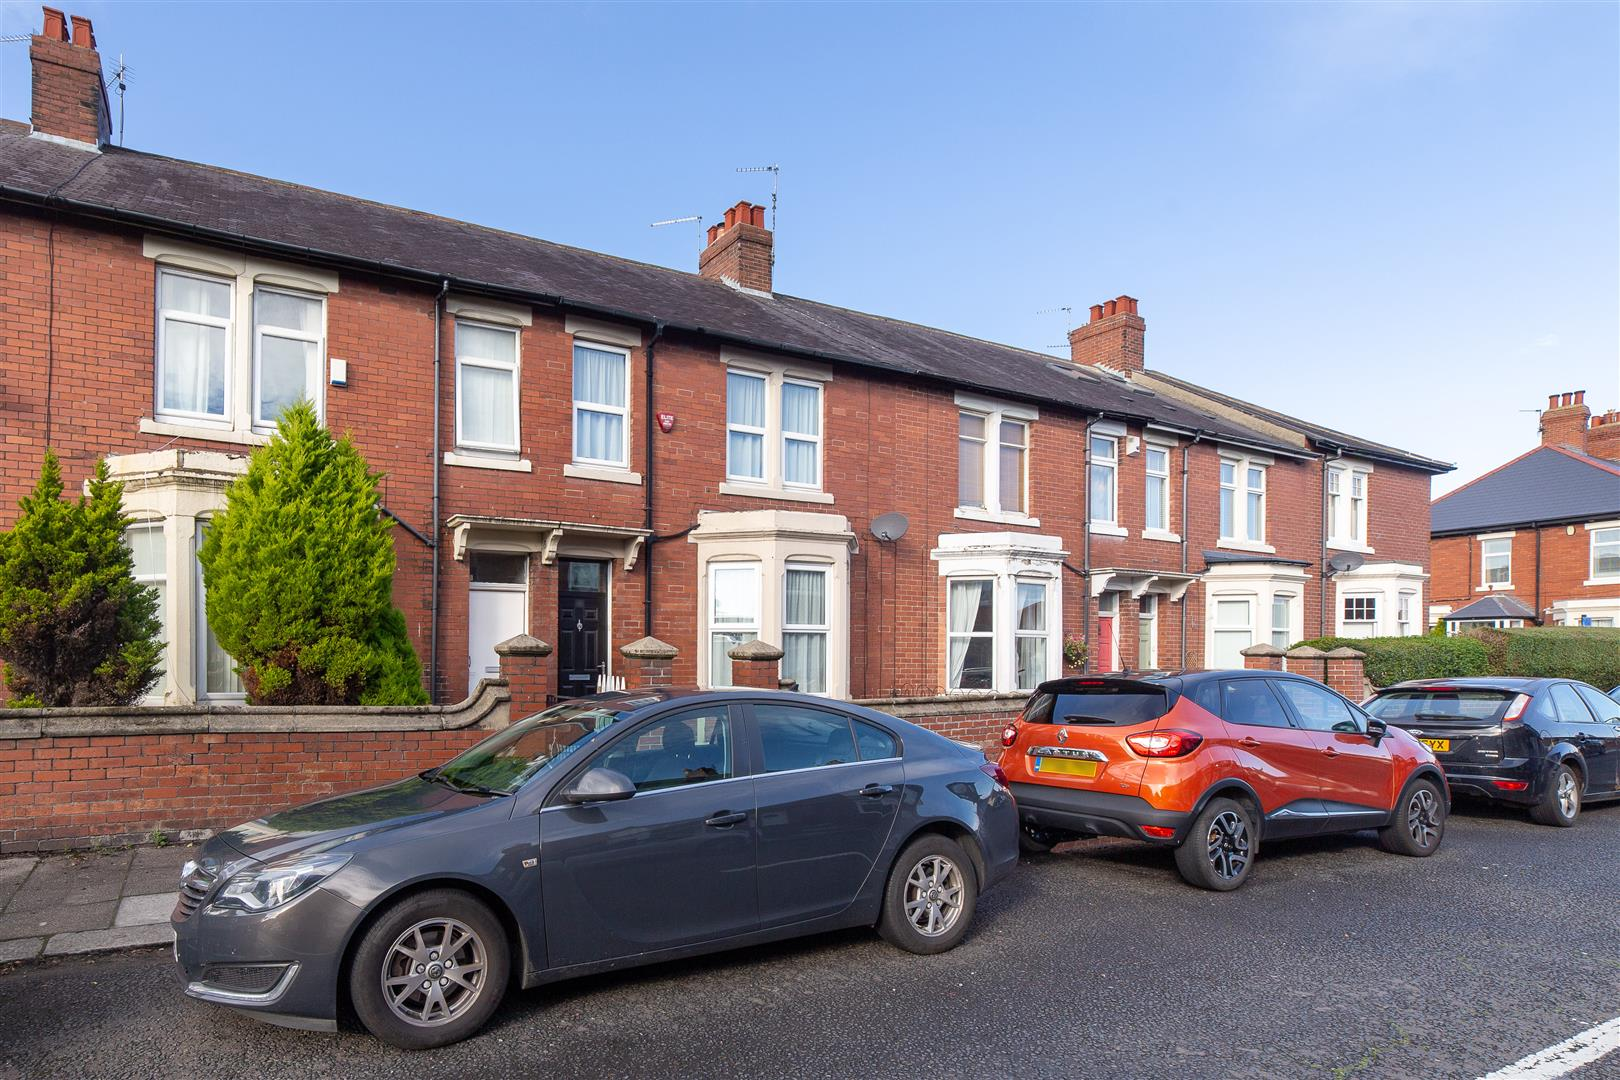 3 bed terraced house for sale in Newcastle Upon Tyne, NE6 5SQ, NE6